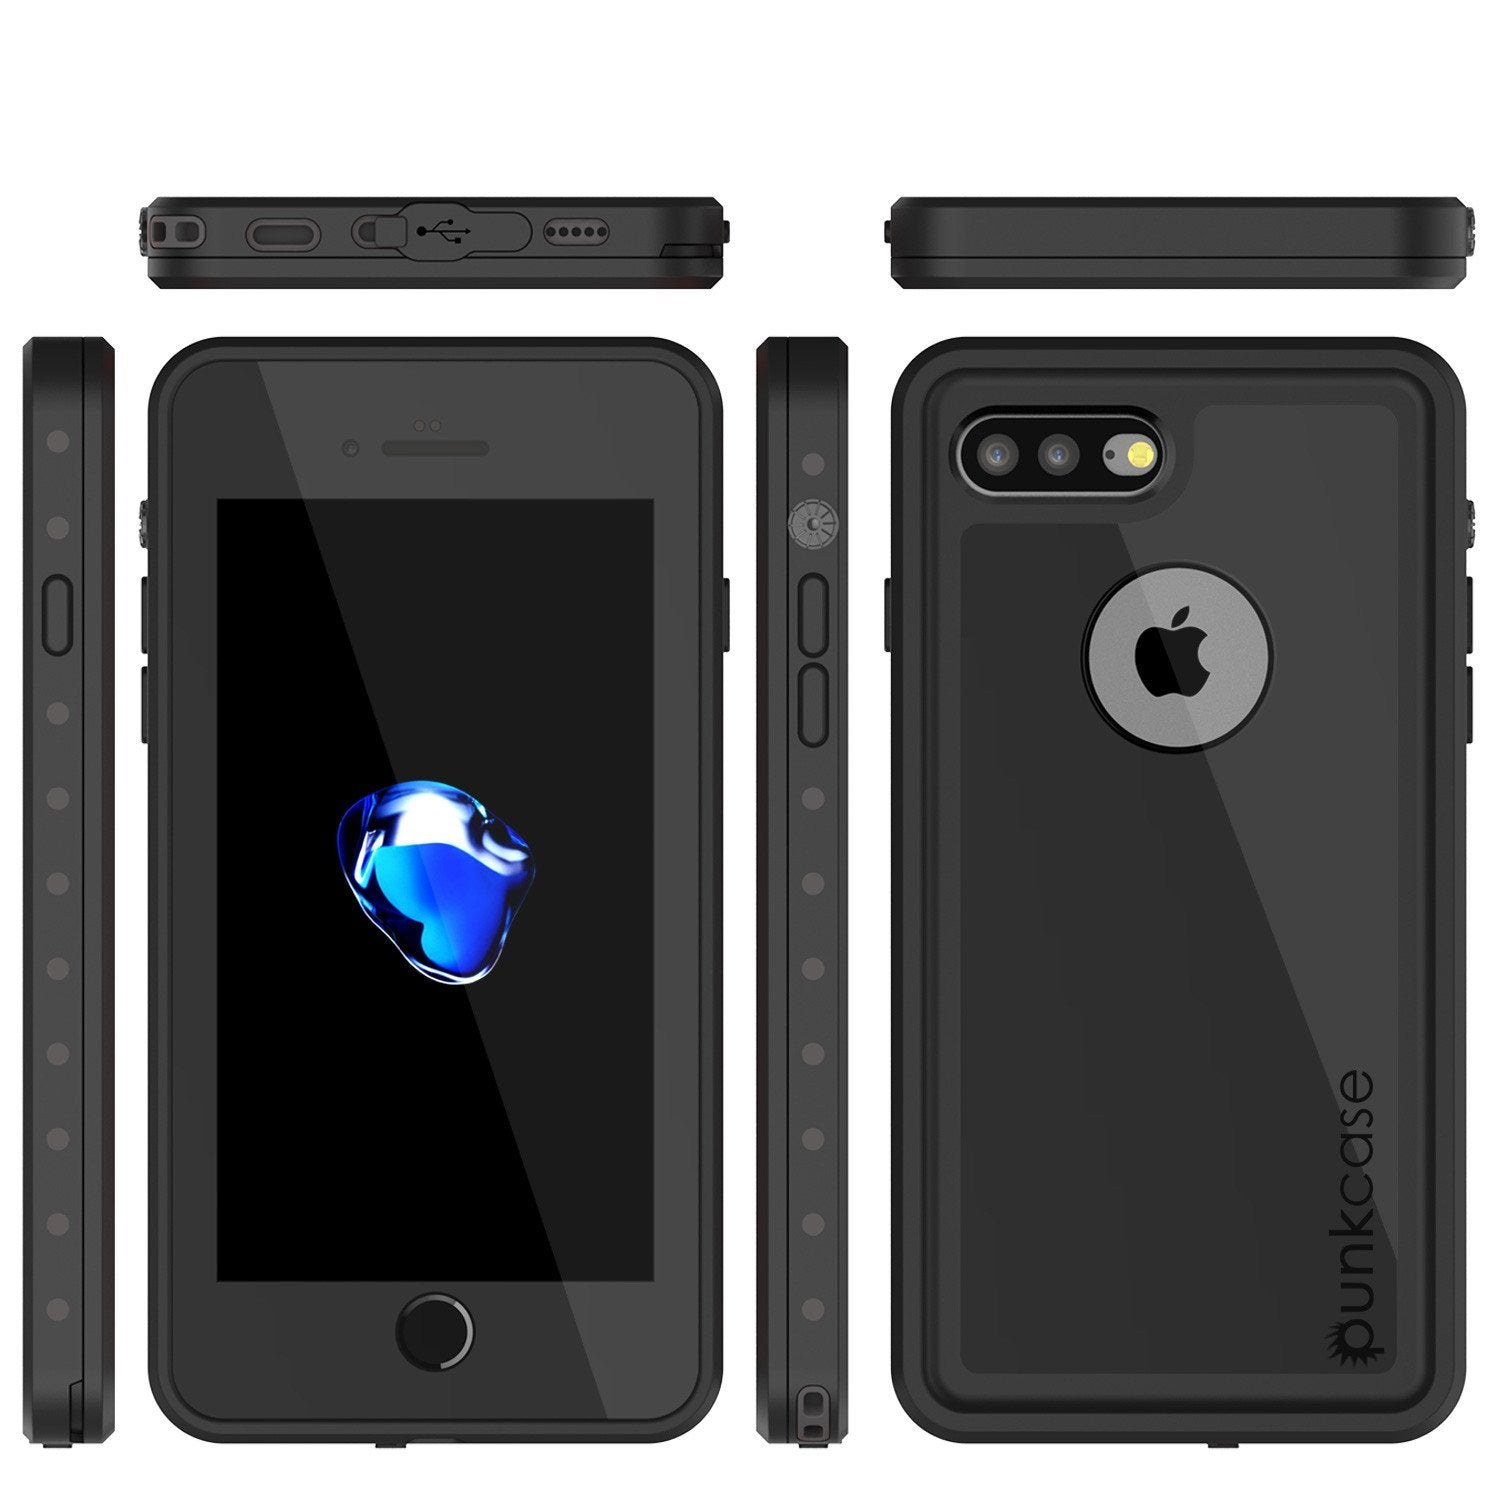 iPhone 7s Plus Waterproof Case, Punkcase [Black] [StudStar Series] [Slim Fit] [IP68 Certified] [Shockproof] [Dirtproof] [Snowproof] Armor Cover for Apple iPhone 7 Plus & 7s +